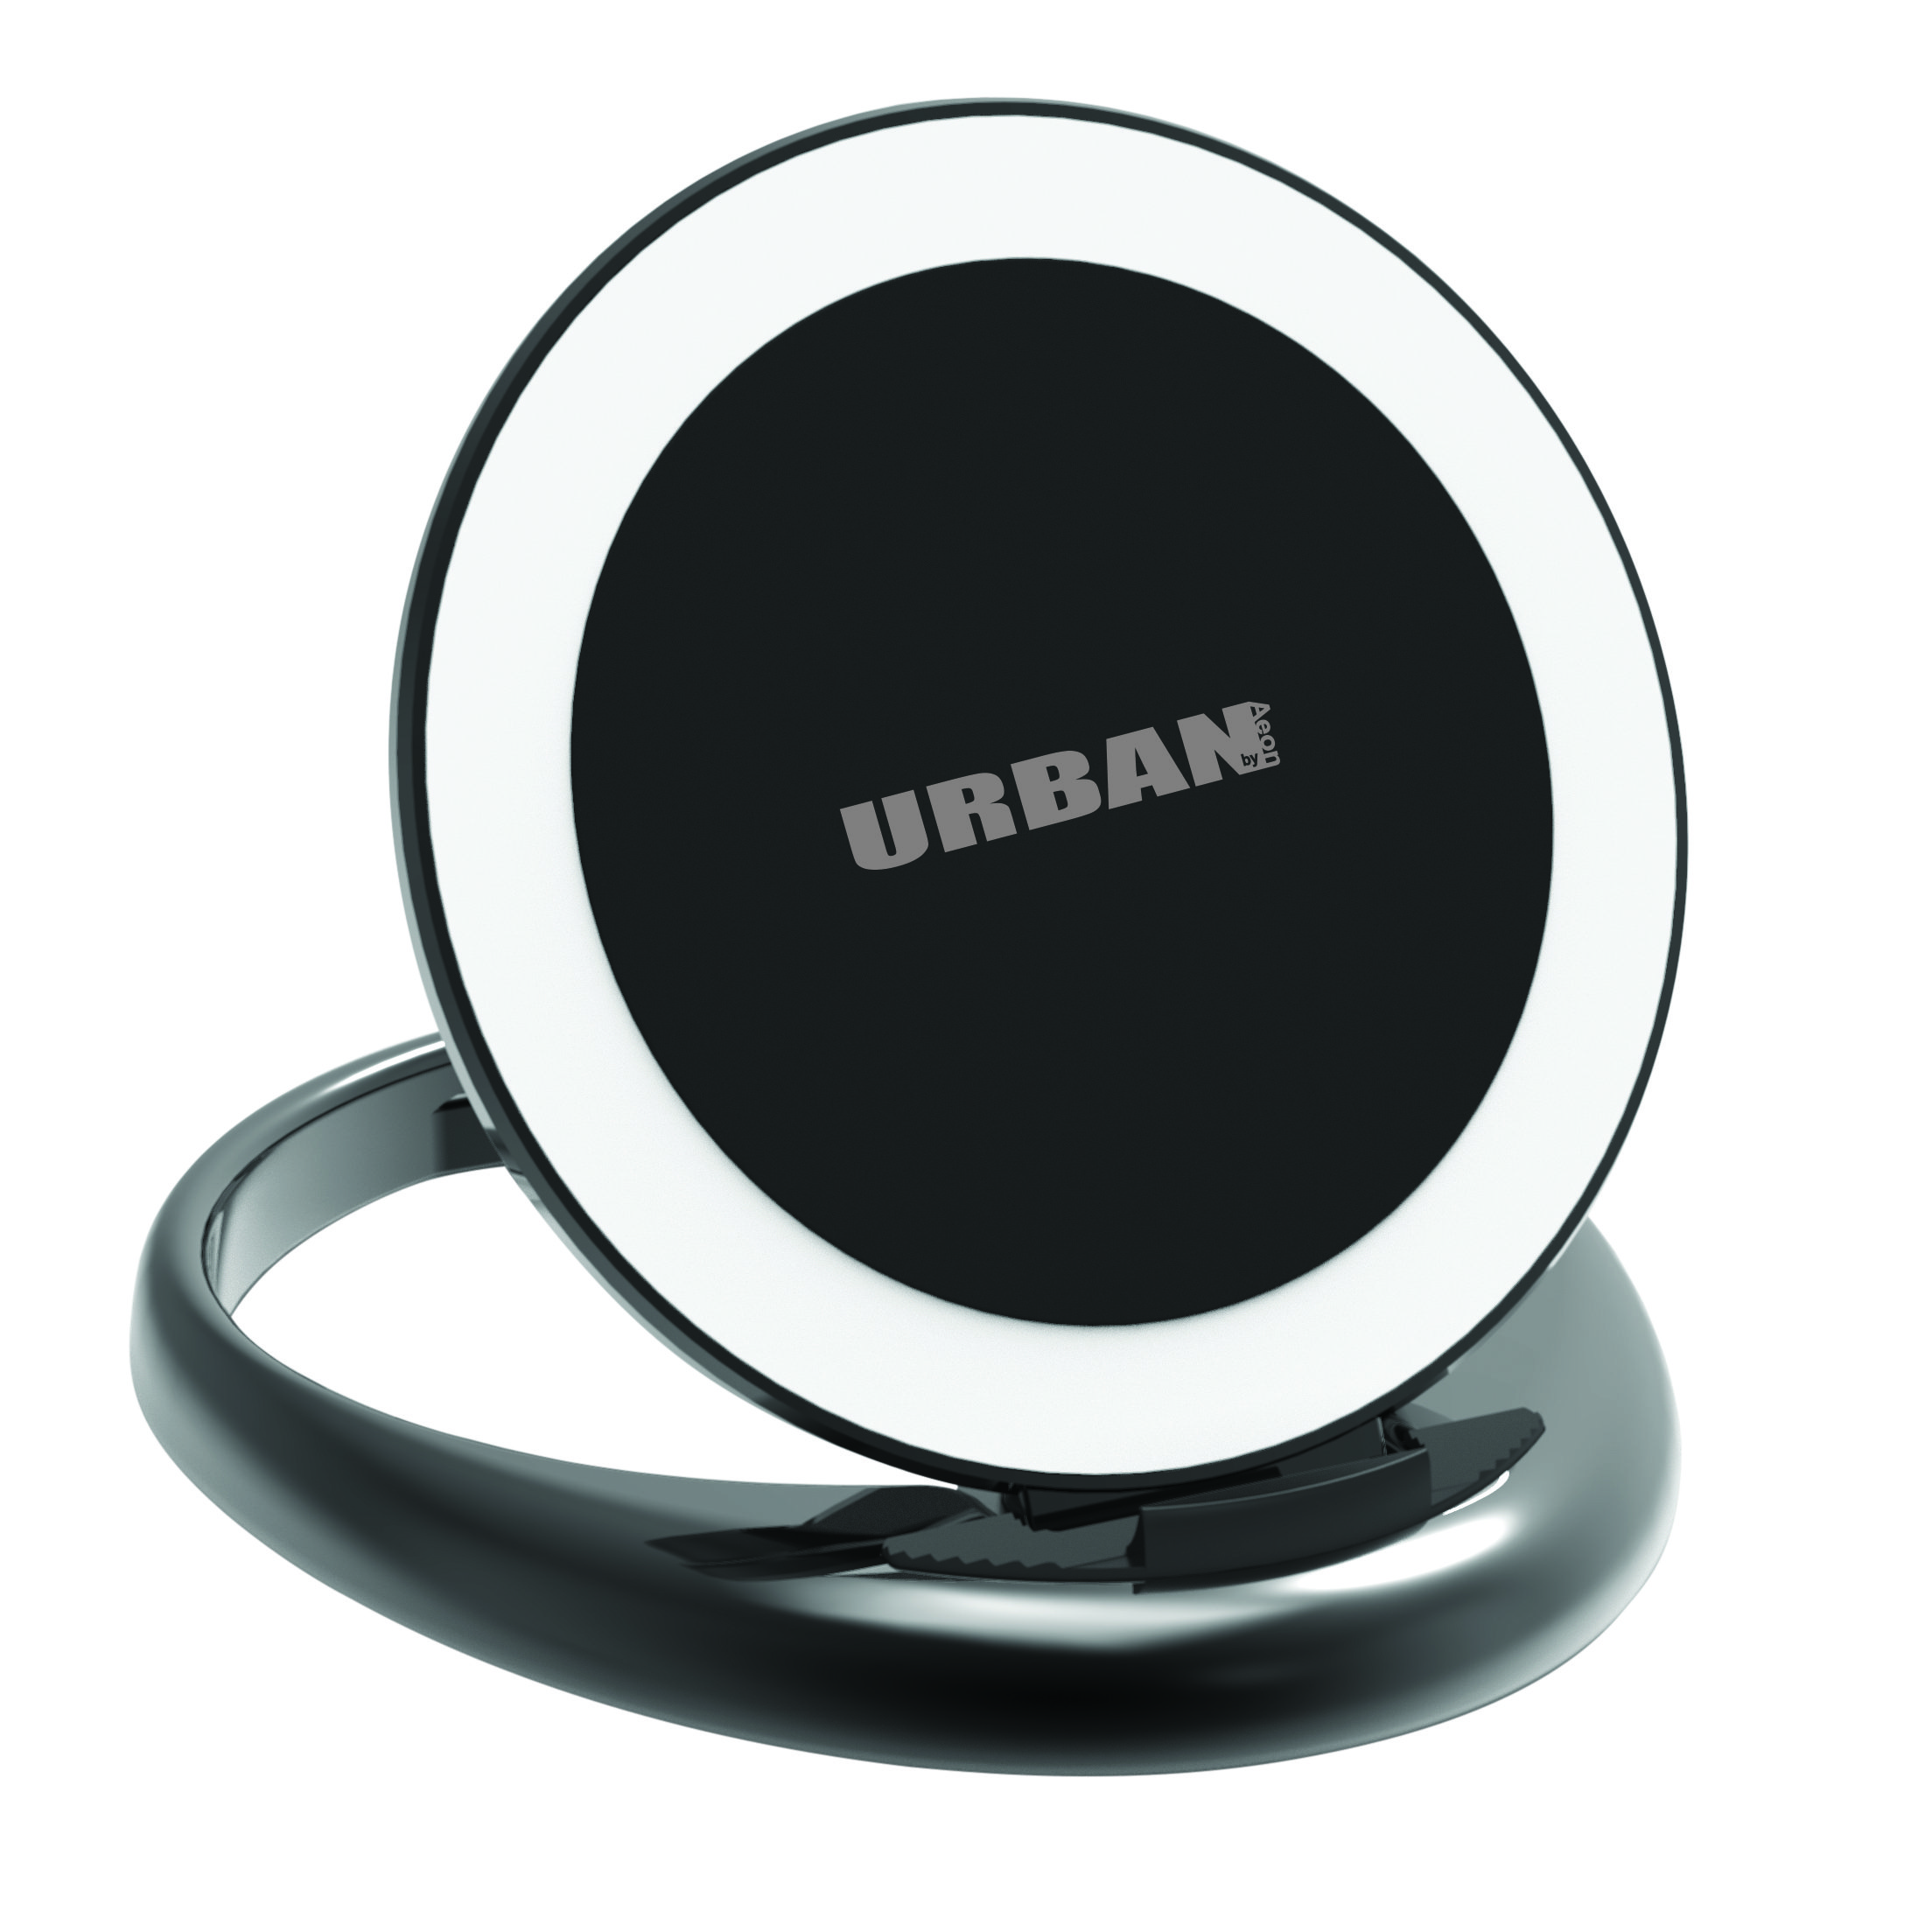 Urban Flex wireless charging pad - Click to enlarge